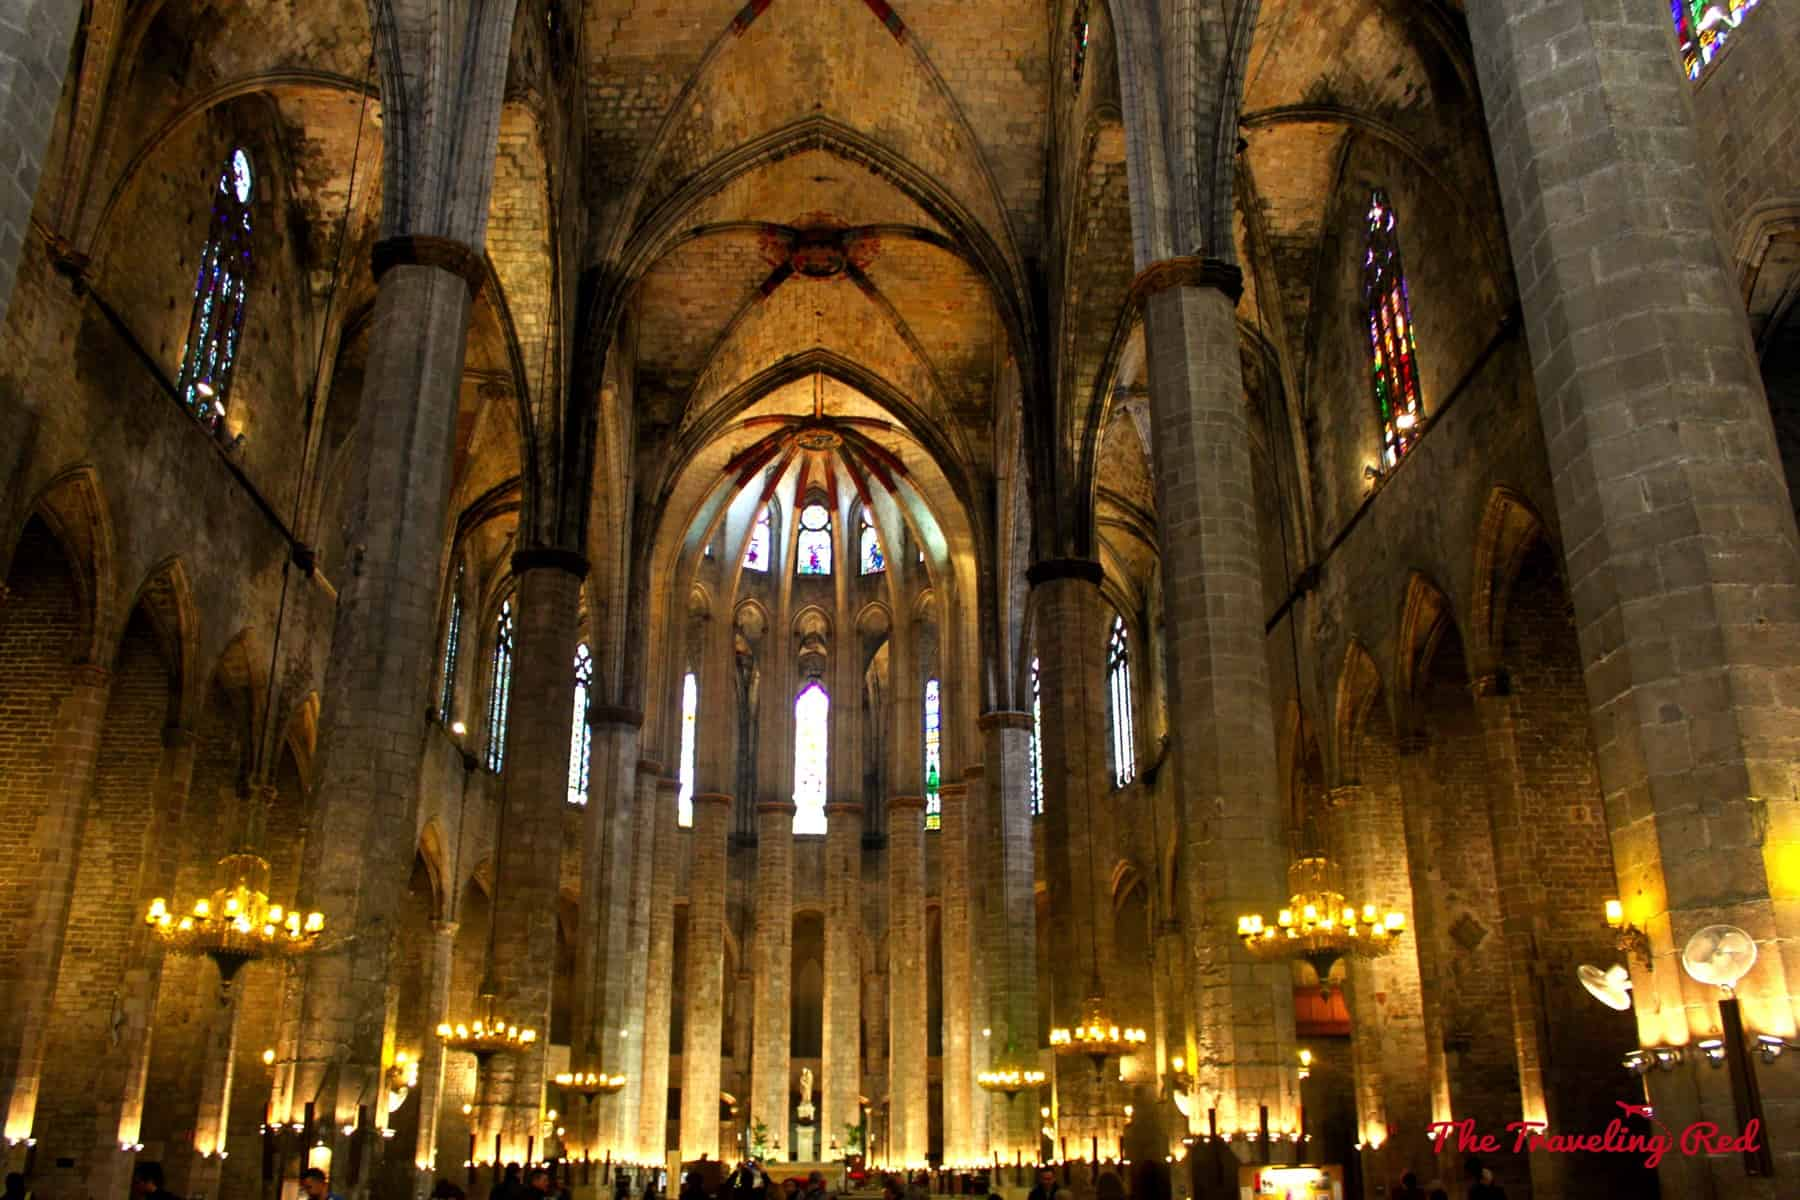 Inside Basilica de Santa Maria del Mar in Barcelona, Spain.